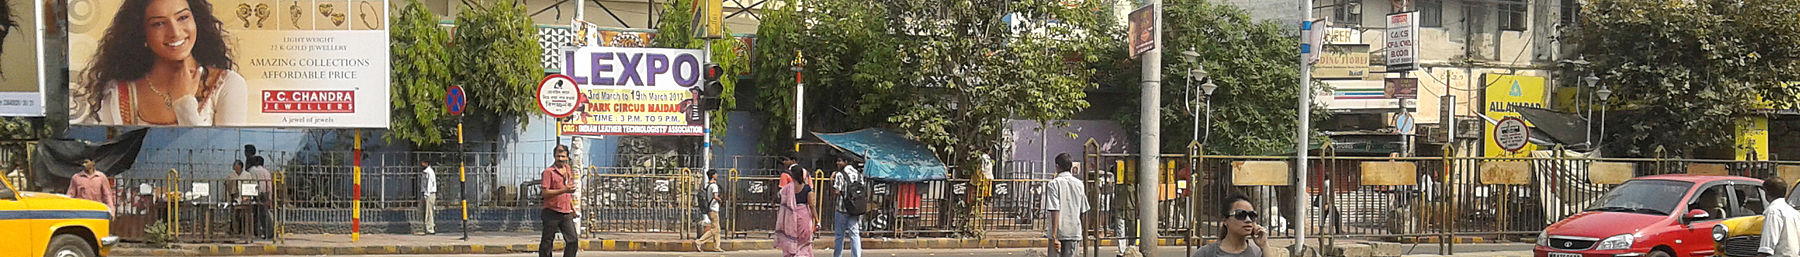 Rashbehari avenue and SP Mukherjee road crossing(Kolkata) (cropped).jpg